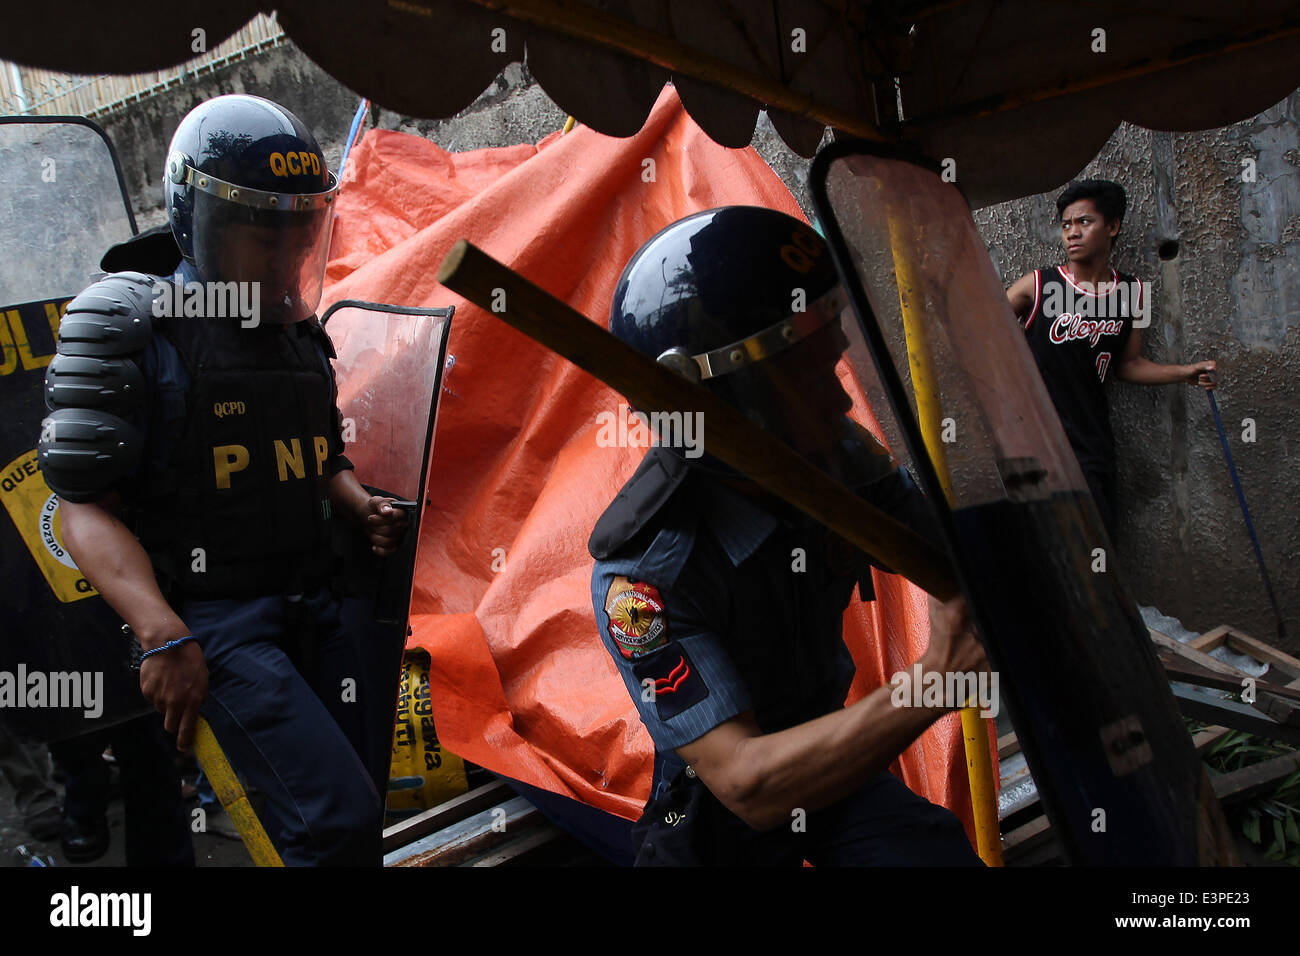 Quezon City, Philippines. 26th June, 2014. Policemen enter a home during the demolition of shanties in Quezon City, - Stock Image